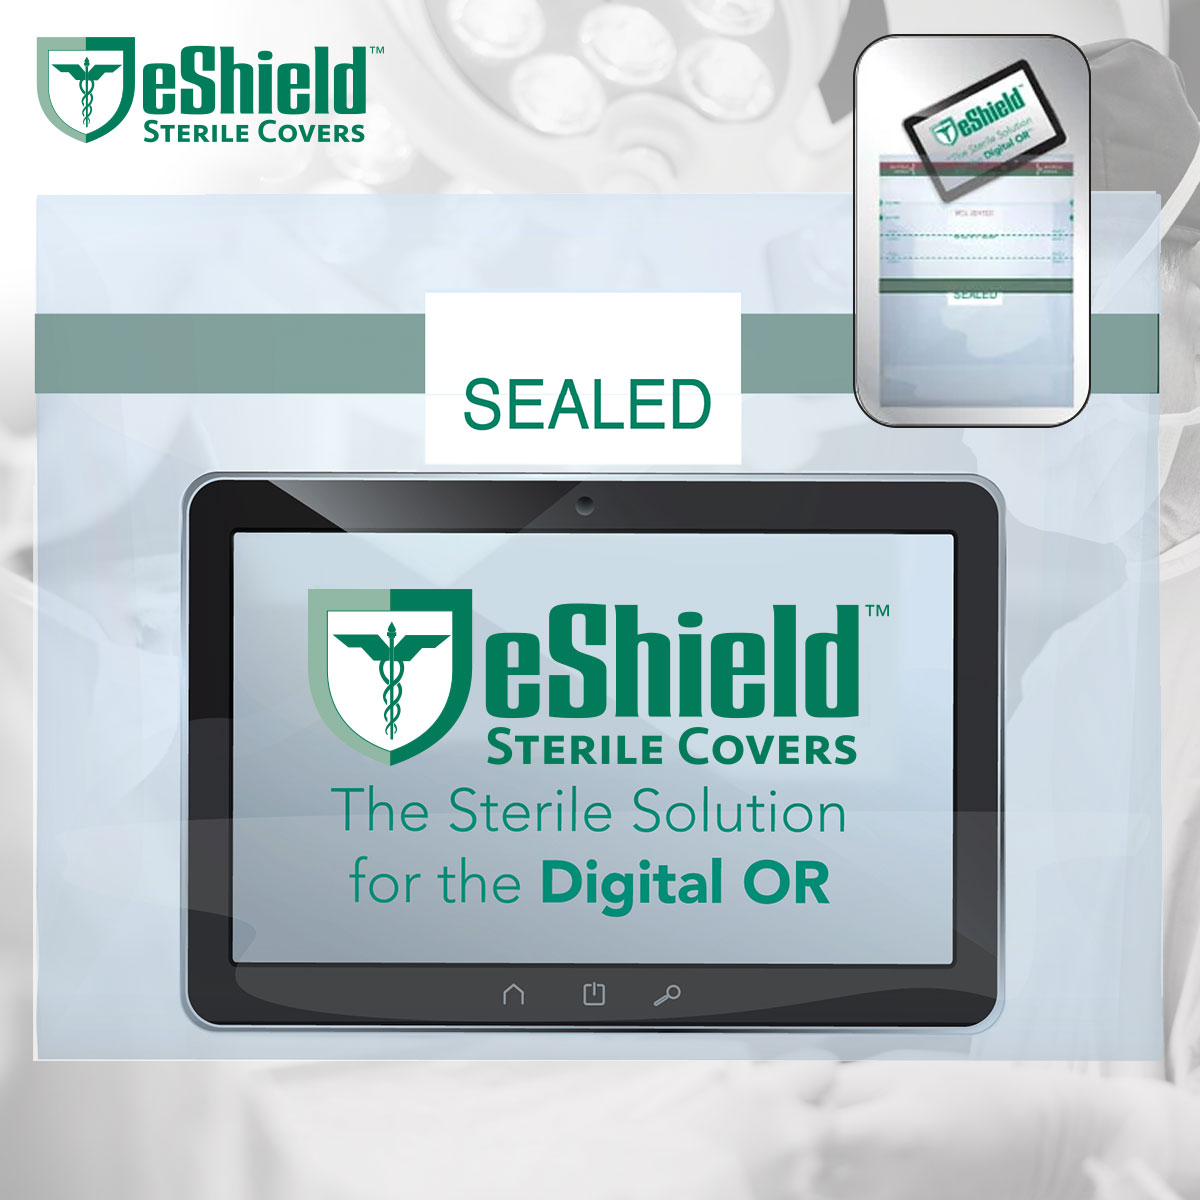 03A-eShield-Sterile-Electronic-Cover-Tablet-Web-1